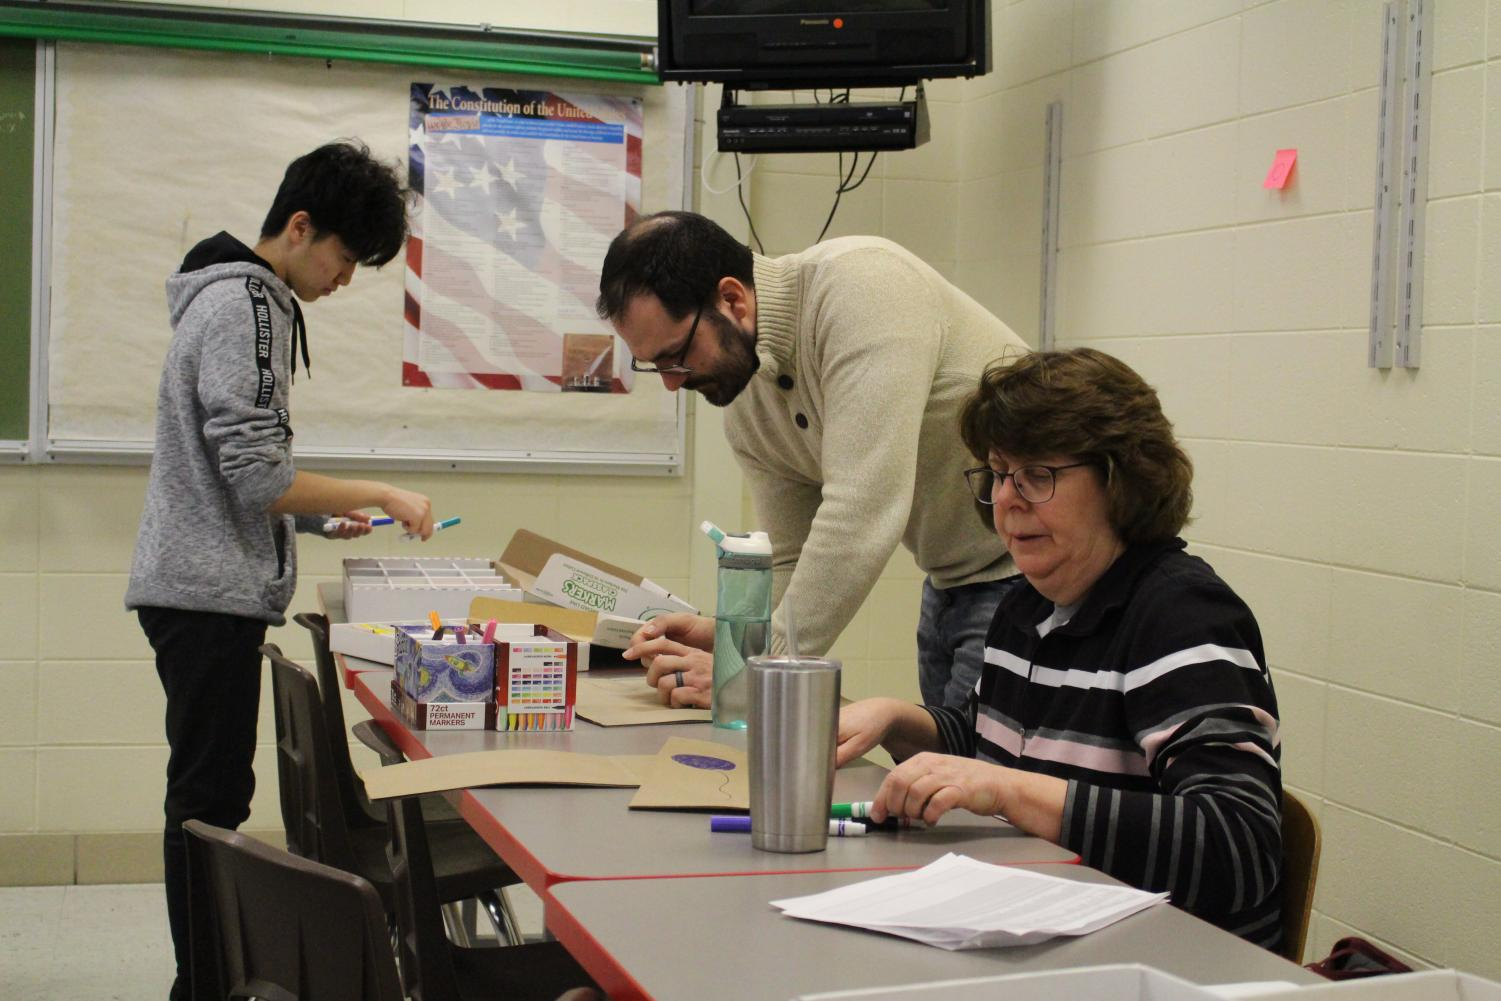 Many+teacher+supervisors+lent+a+helping+hand+as+well.+Pictured+here+Mr.+Tachick+and+Ms.+Busche+help+decorate+paper+bags.